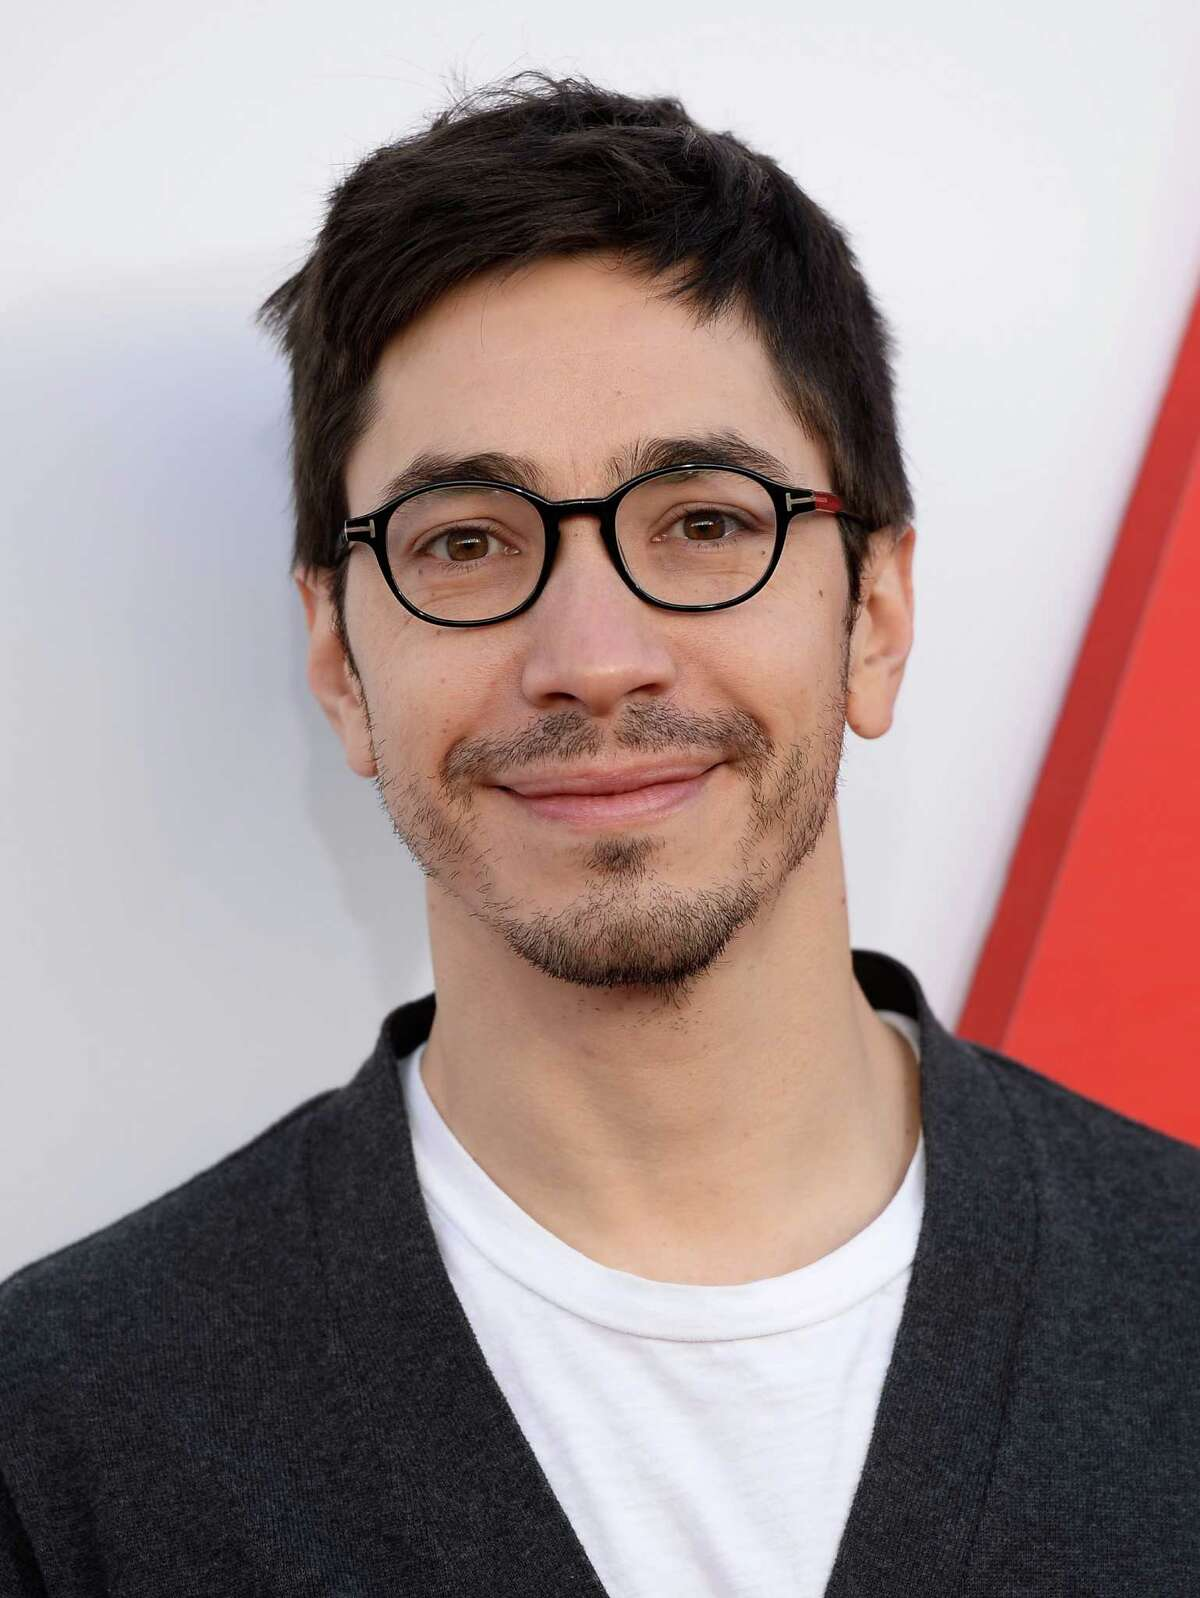 """Connecticut connection: Fairfield native Where you know him from: """"DodgeBall: A True Underdog Story,"""" """"Tusk,"""" """"Alvin & The Chipmunks"""" Price to hear the voice of Alvin: $125 *Proceeds from Justin Long's cameo will benefit theSouthern Smoke Foundation"""